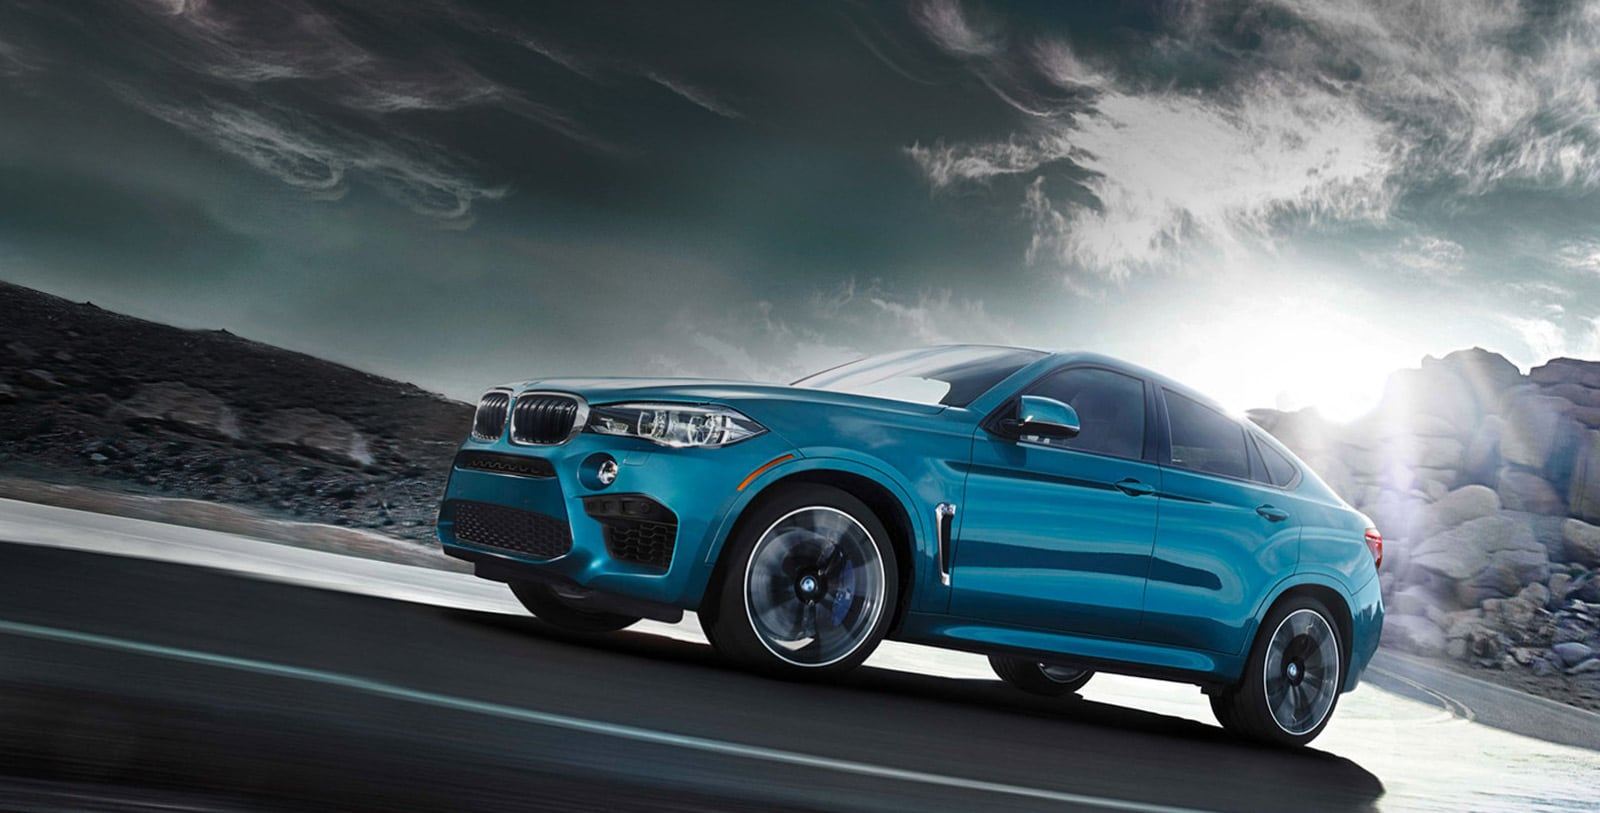 Bmw X6 M Sports Activity Coupe Bmw Usa